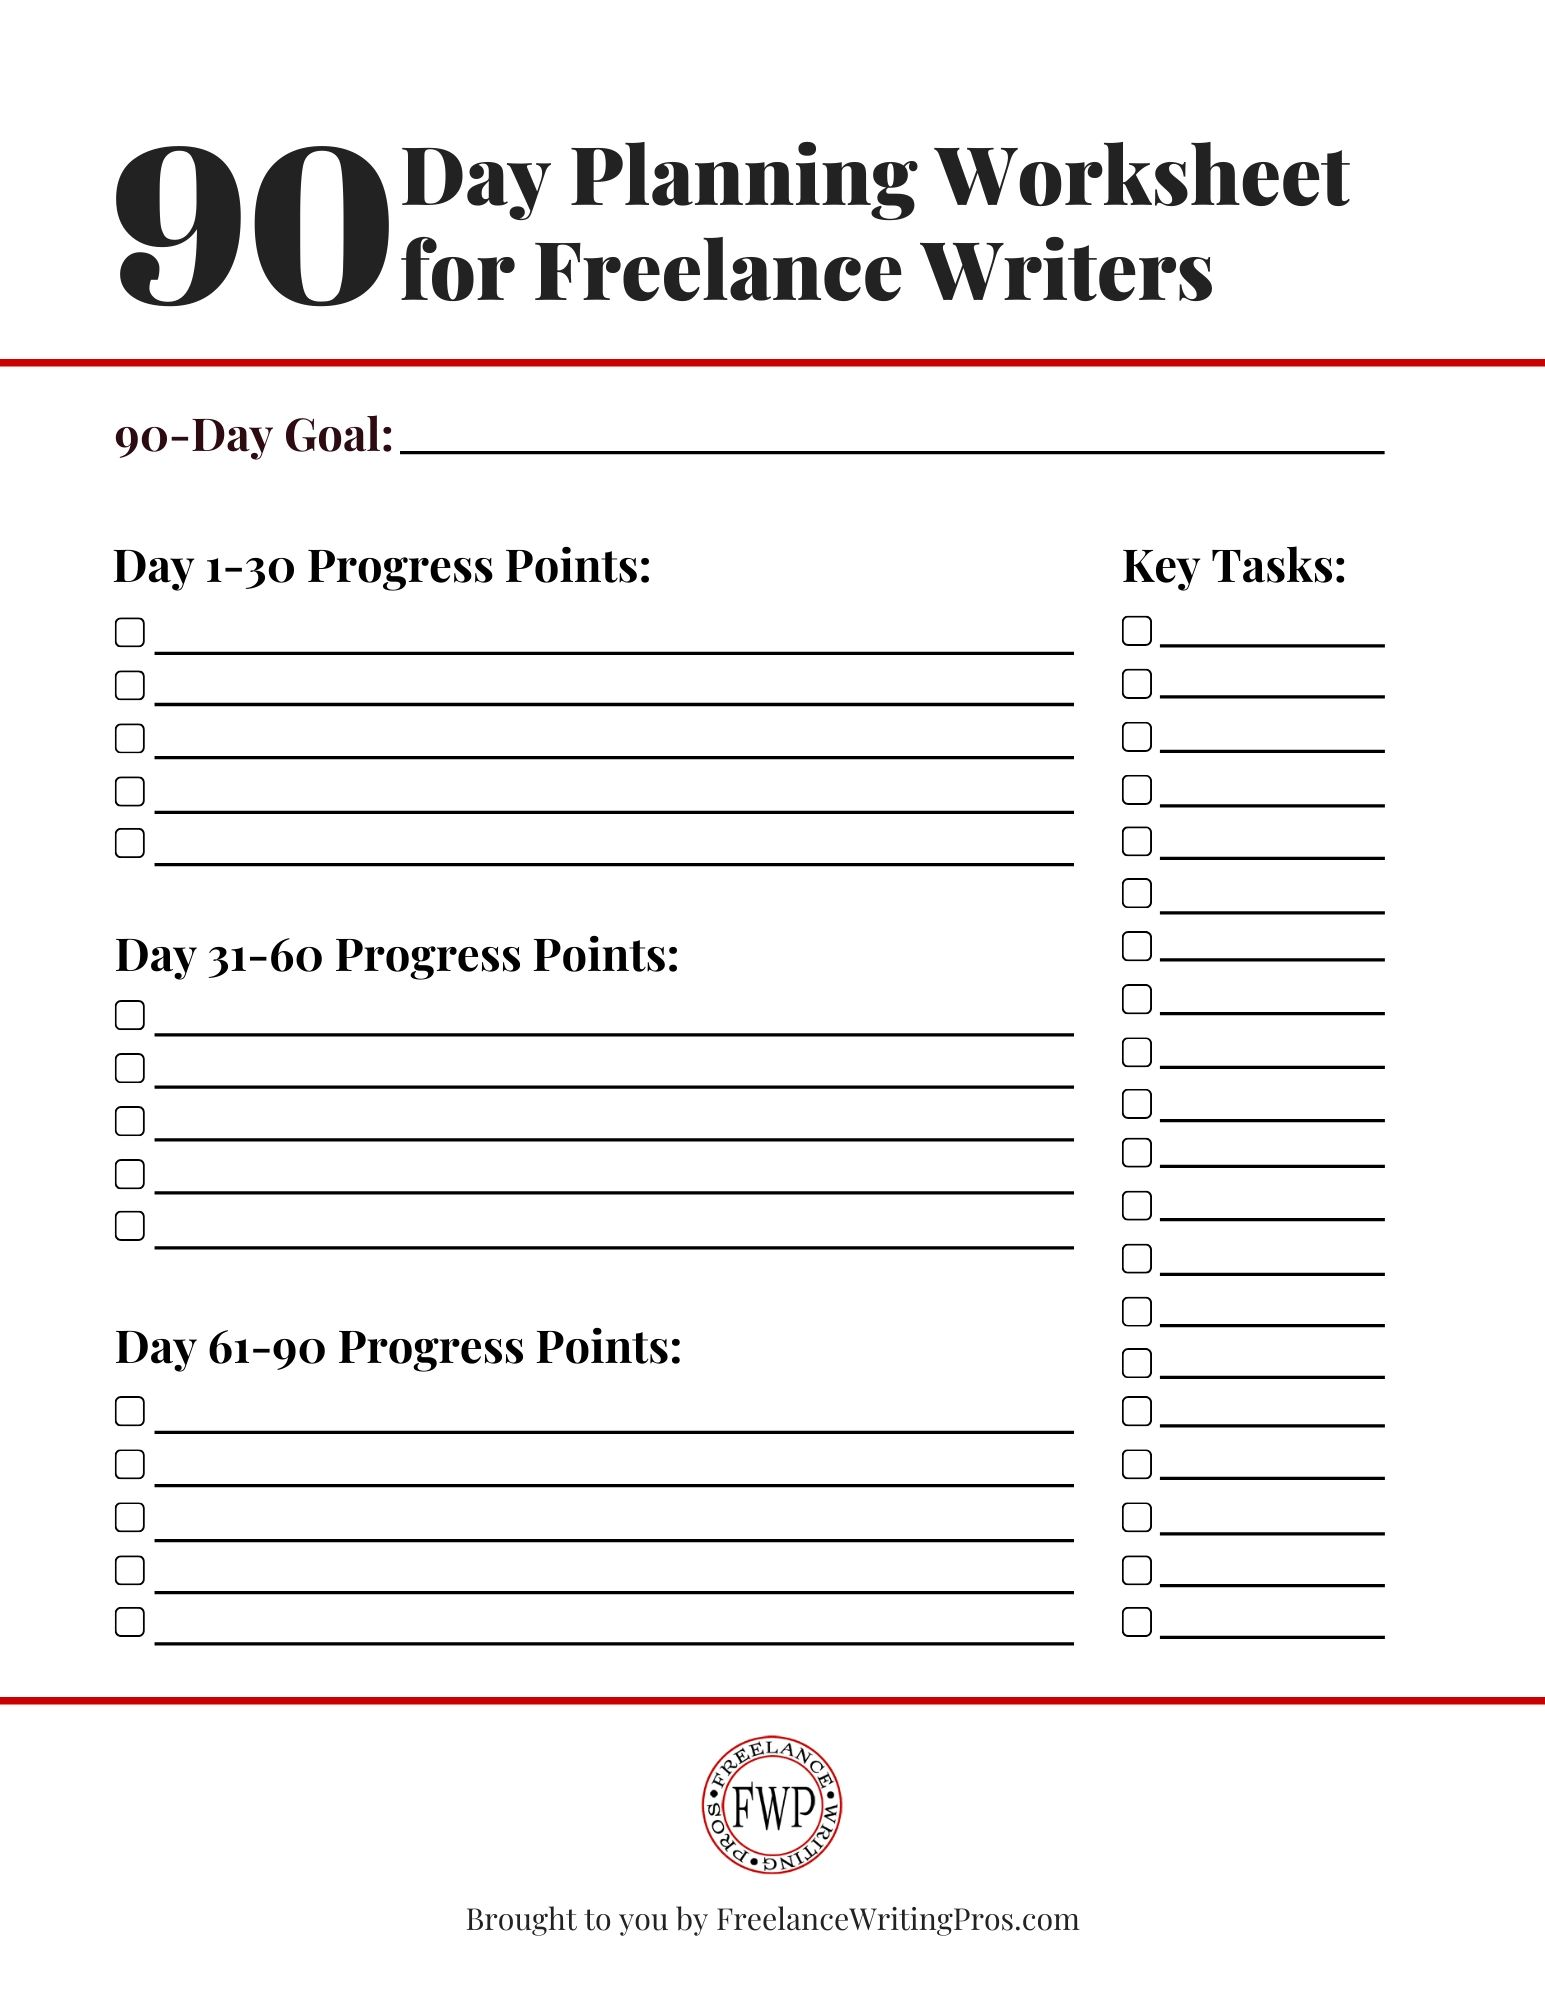 90 Day Planning For Freelance Writers